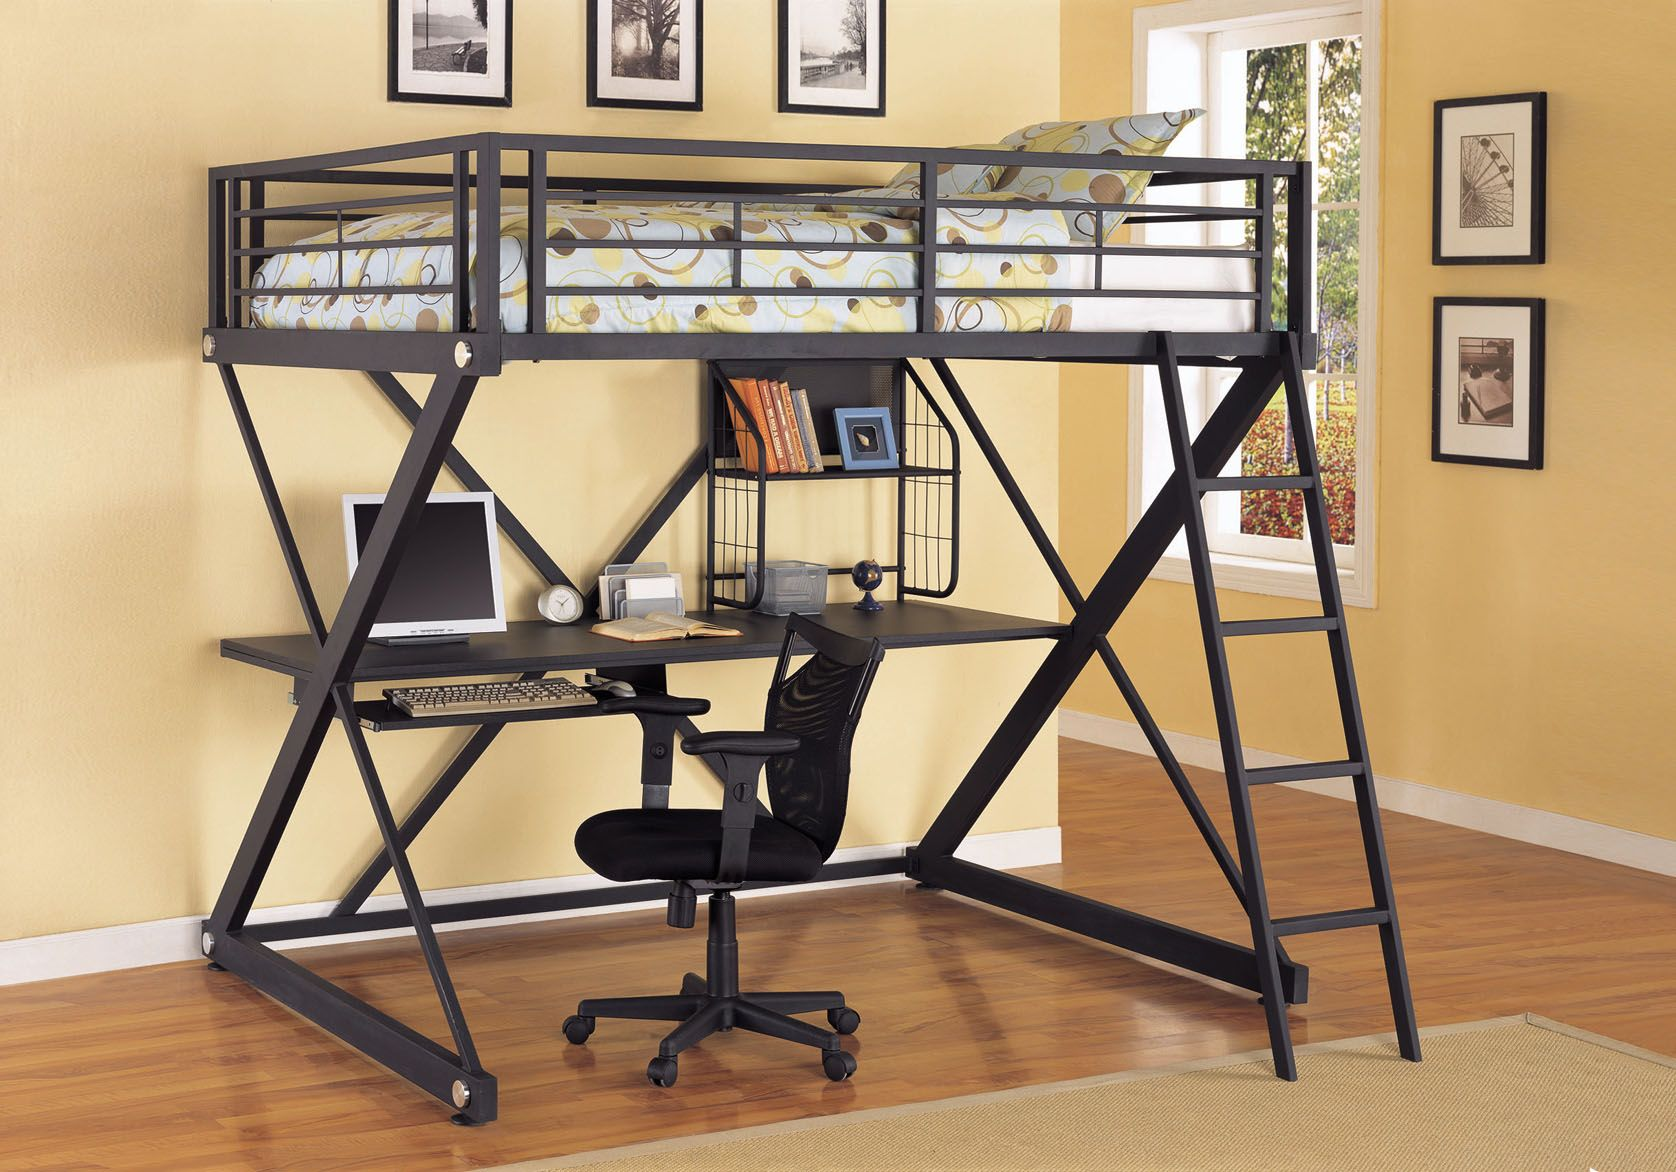 Bunk Bed With Study Table  Google Search - Bunk